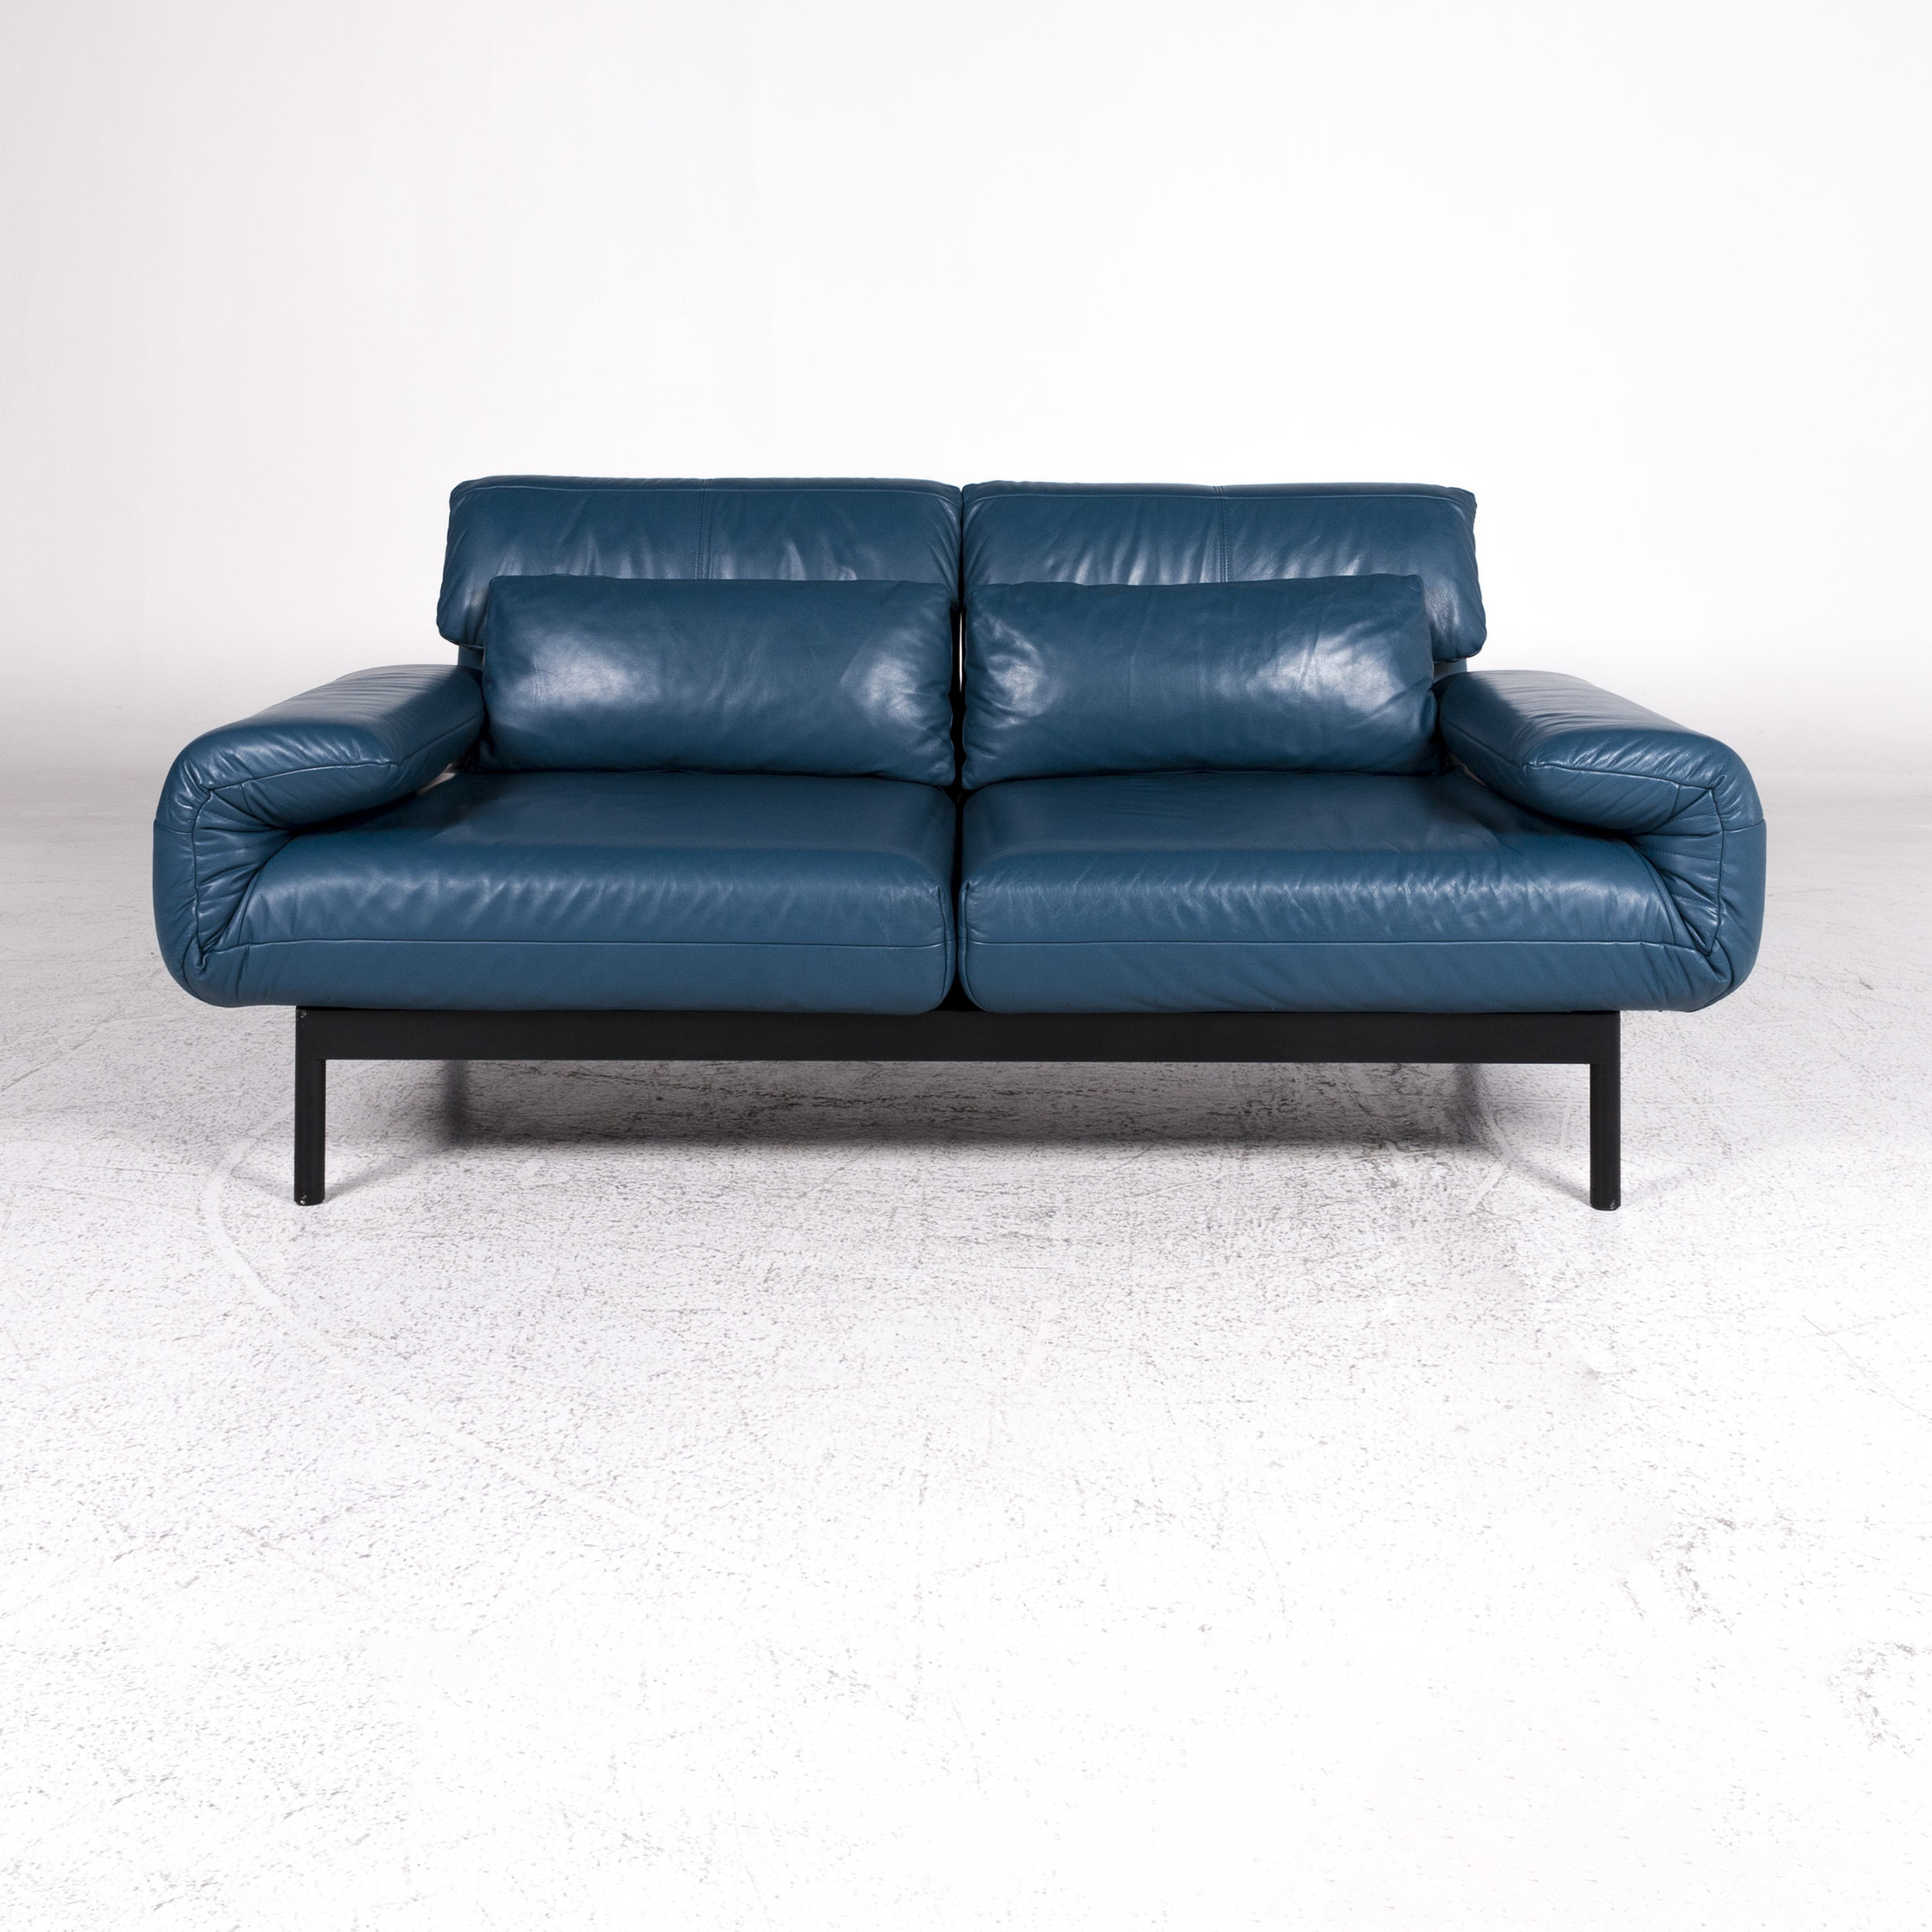 Couch Petrol Rolf Benz Plura Designer Leather Sofa Blue Petrol Two Seater Relax Function Couch 9555